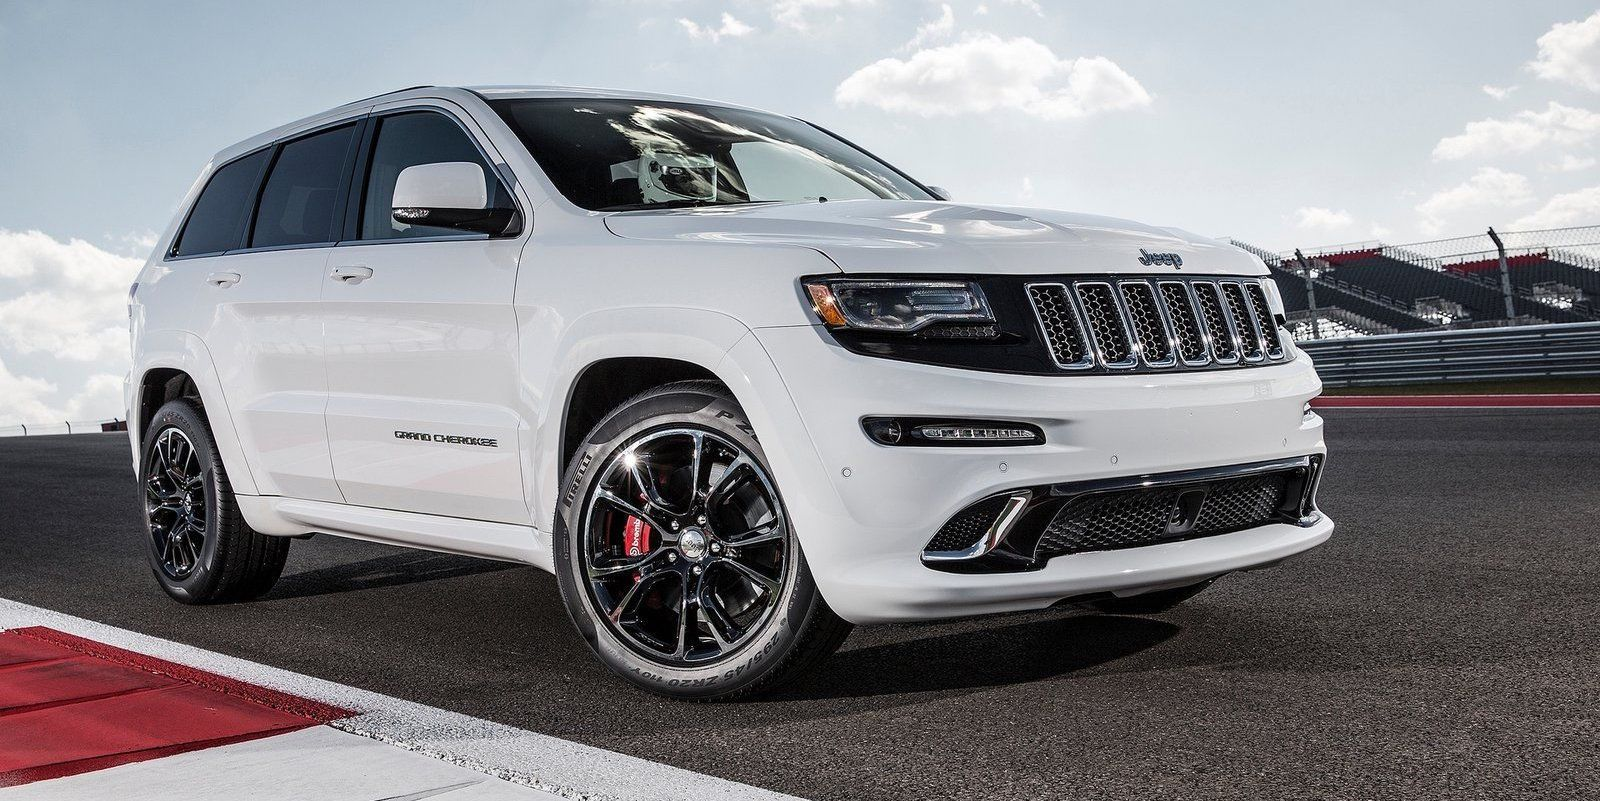 Jeep Ceo Confirms Grand Cherokee Hellcat Is Coming In 2017 Jeep